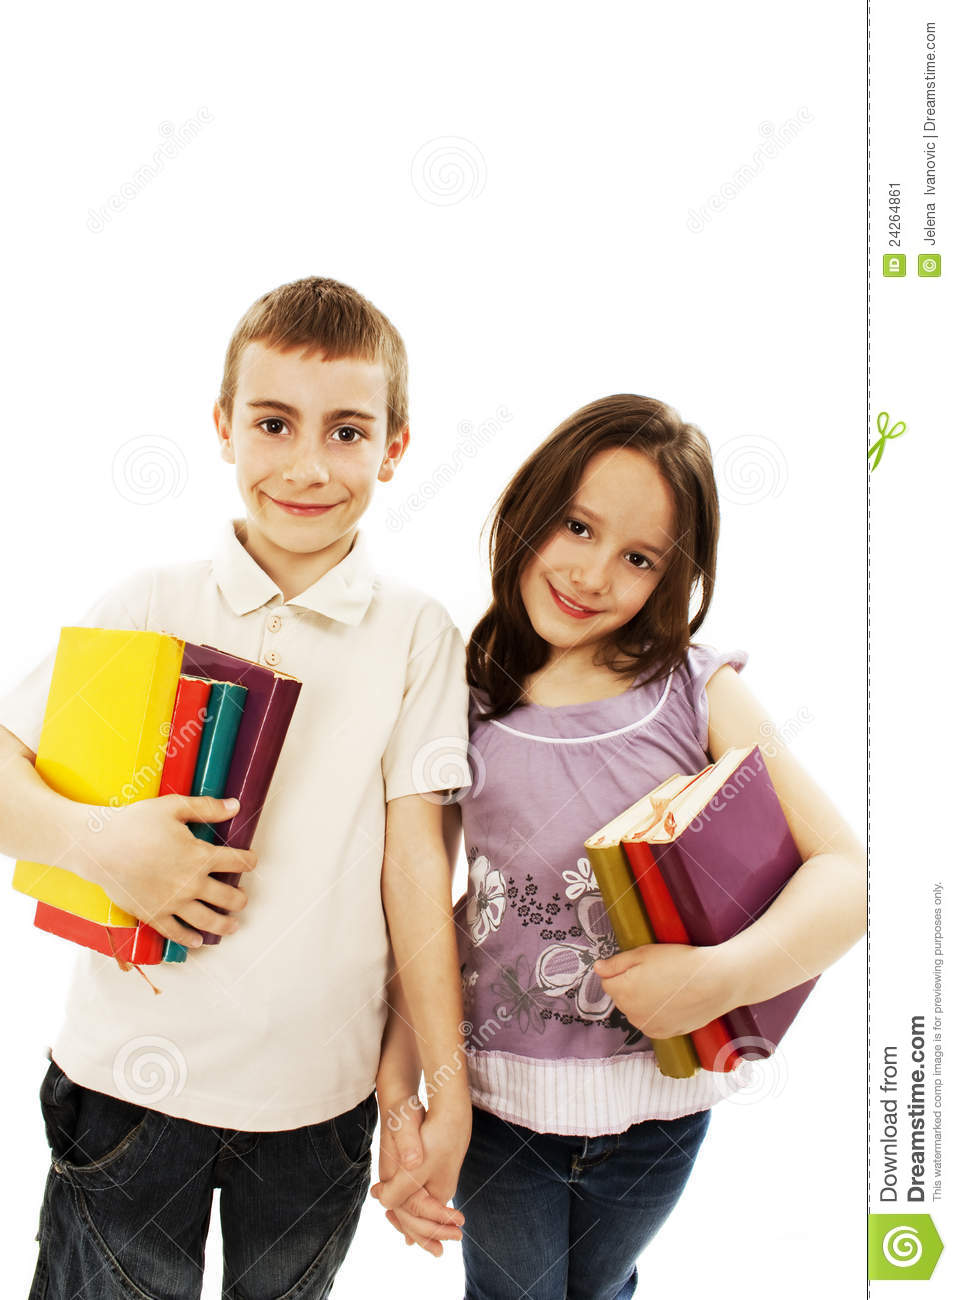 Two Children Students Returning To School Stock Image Image Of Companion Friend 24264861